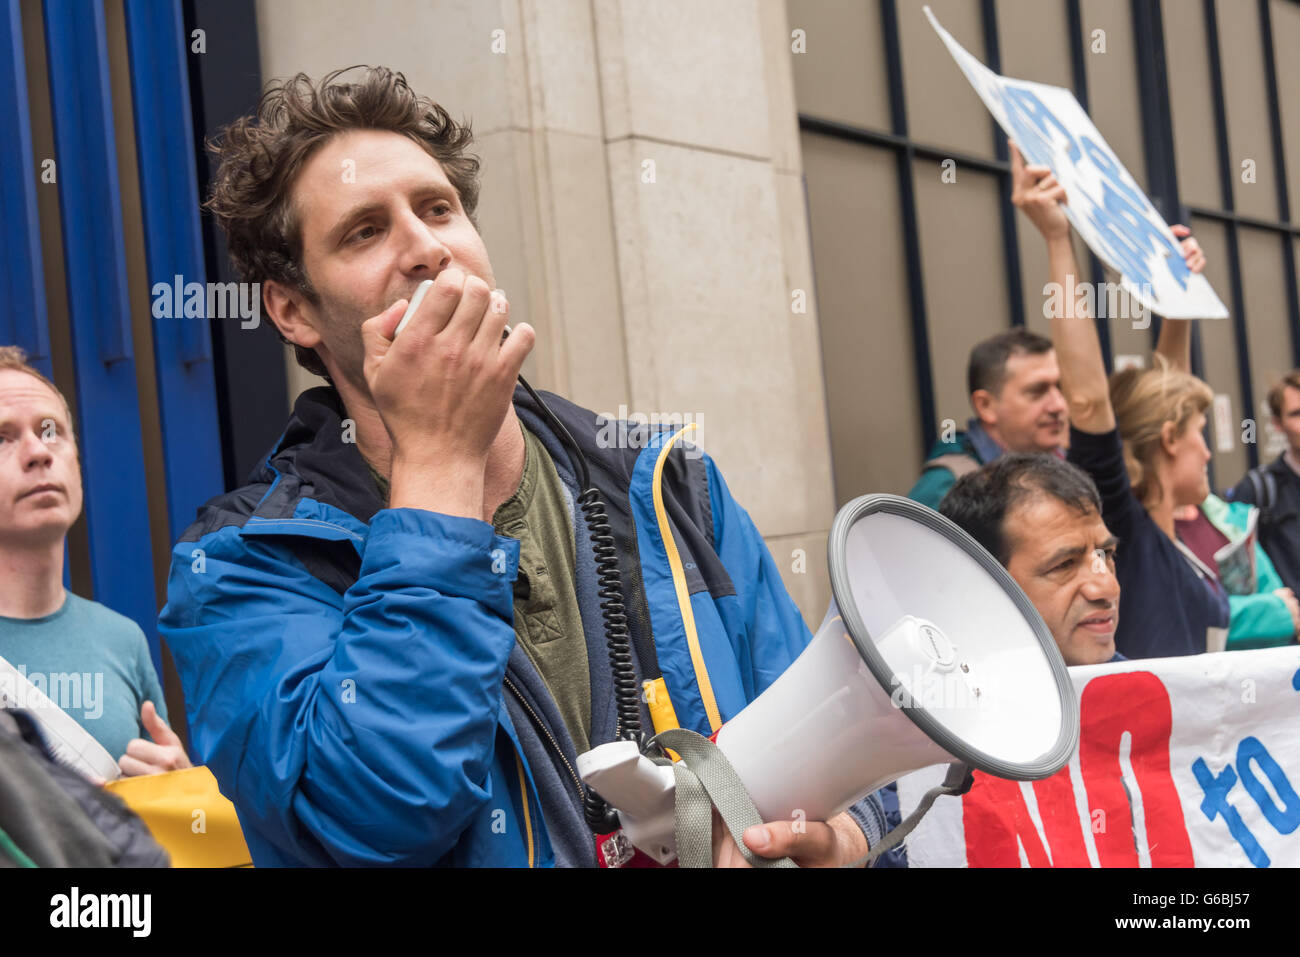 London, UK. June 29th, 2016. Petros Elia, General Secretary of the United Voices of the World union speaks at the Stock Photo